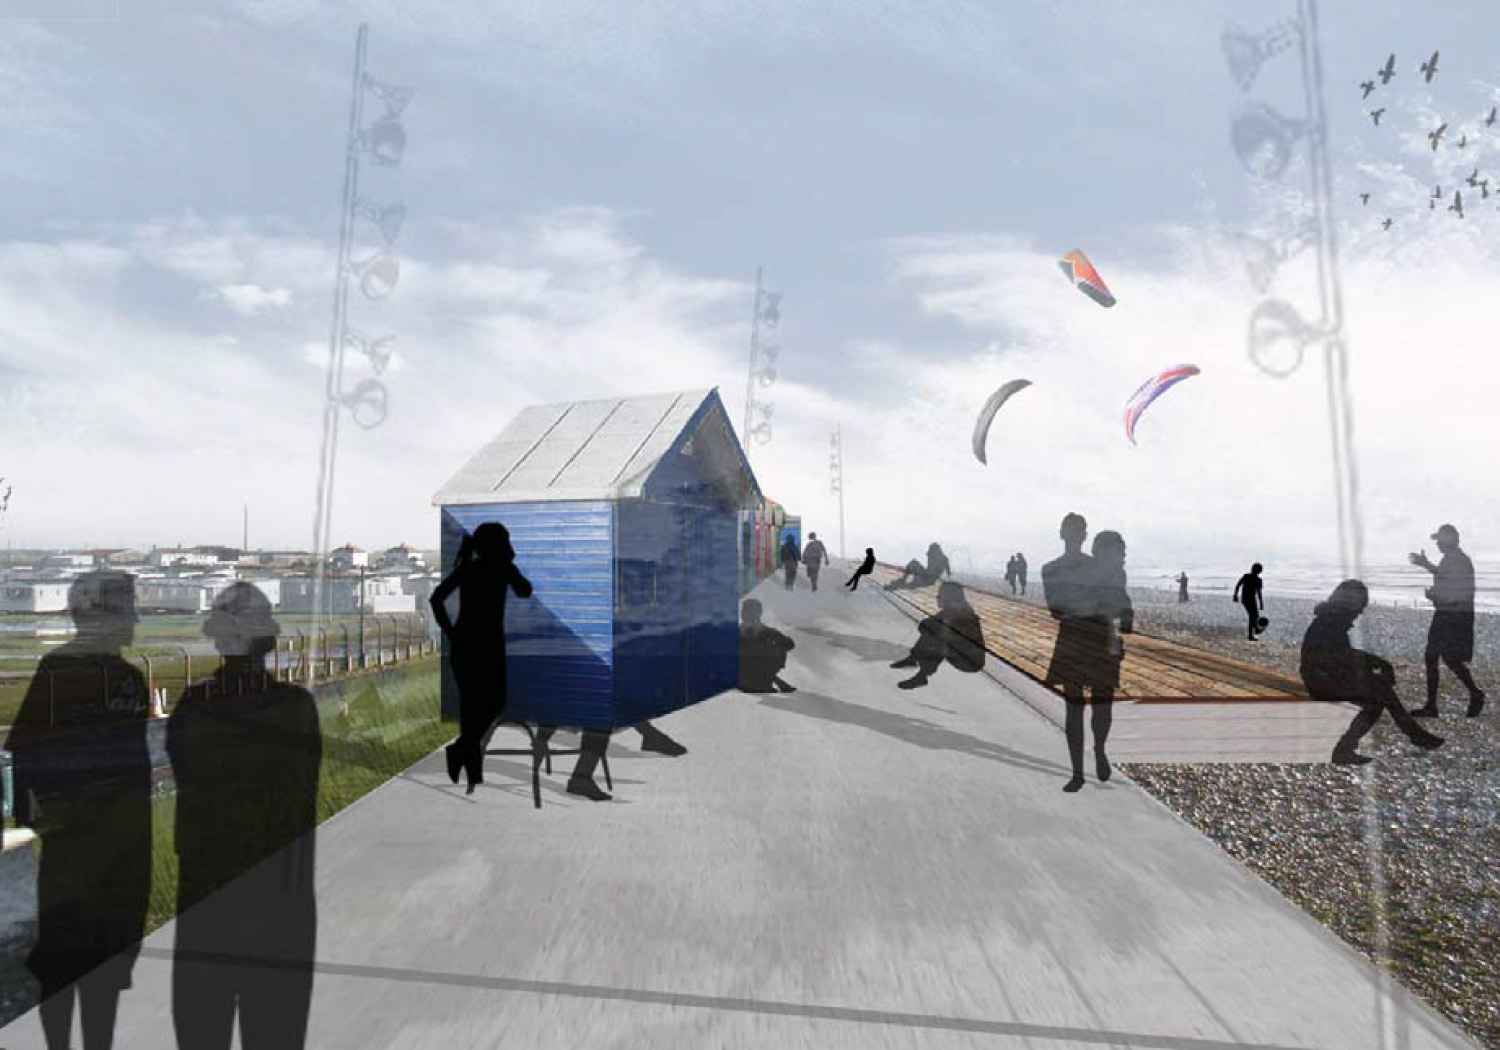 Projects-RecreationTourism-CamberSands_Visual2-1500x1050